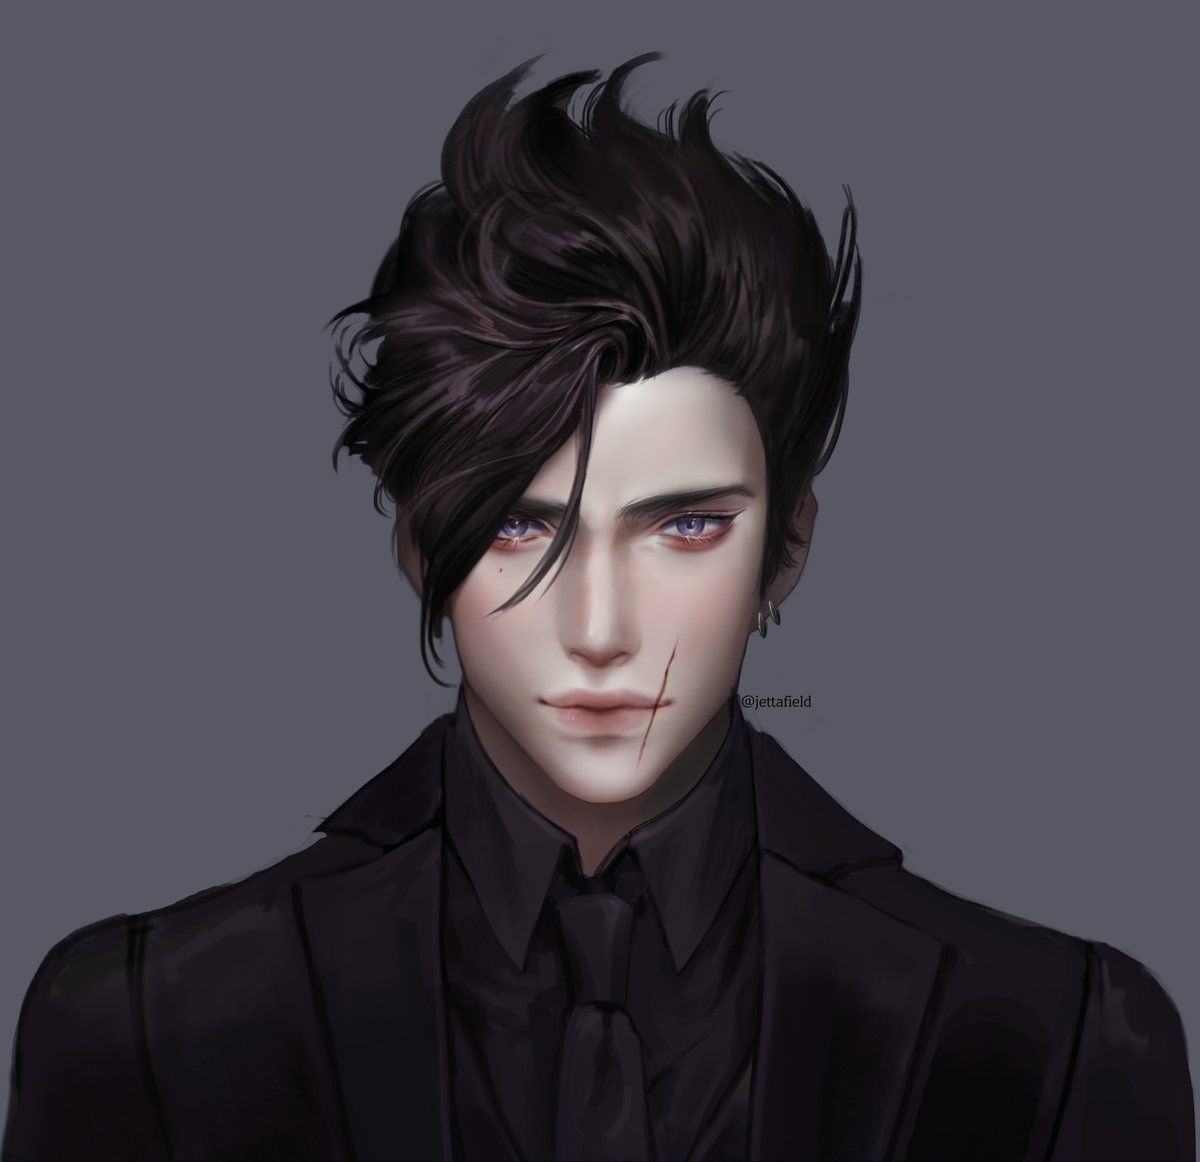 Artist Jettafield Fantasy Art Men Handsome Anime Guys Character Design Inspiration